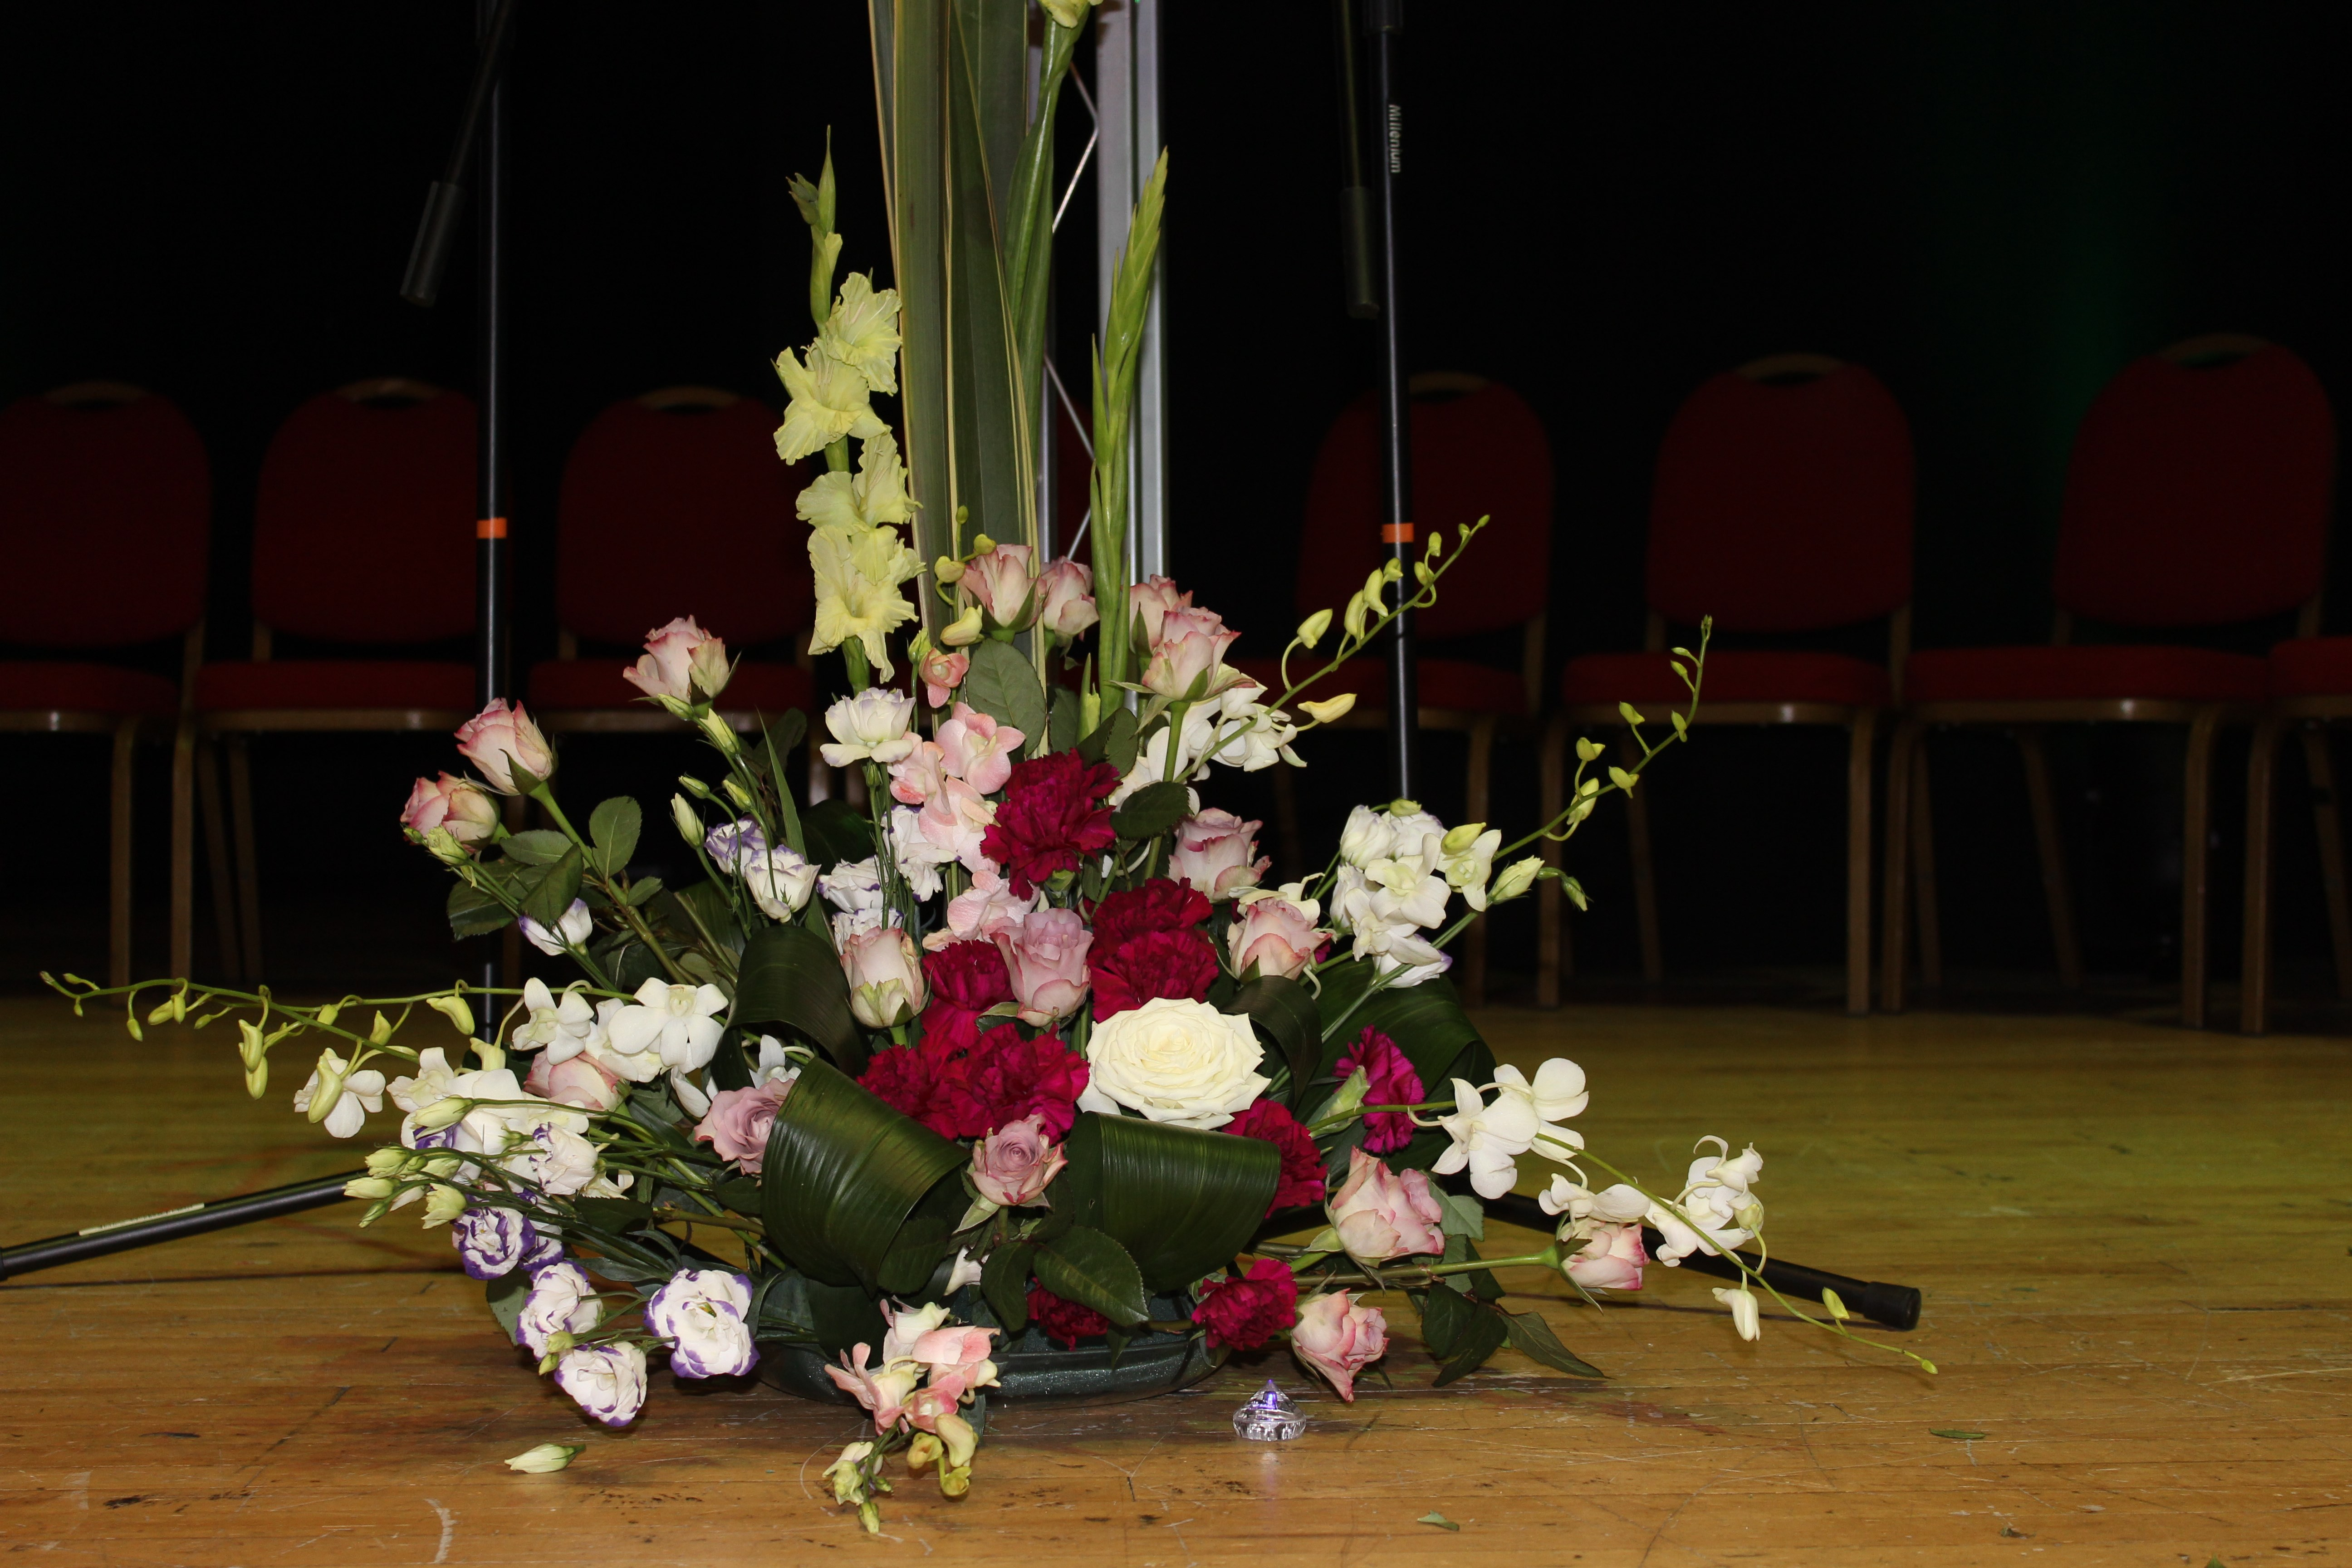 Floral Display at Spring Council Meeting